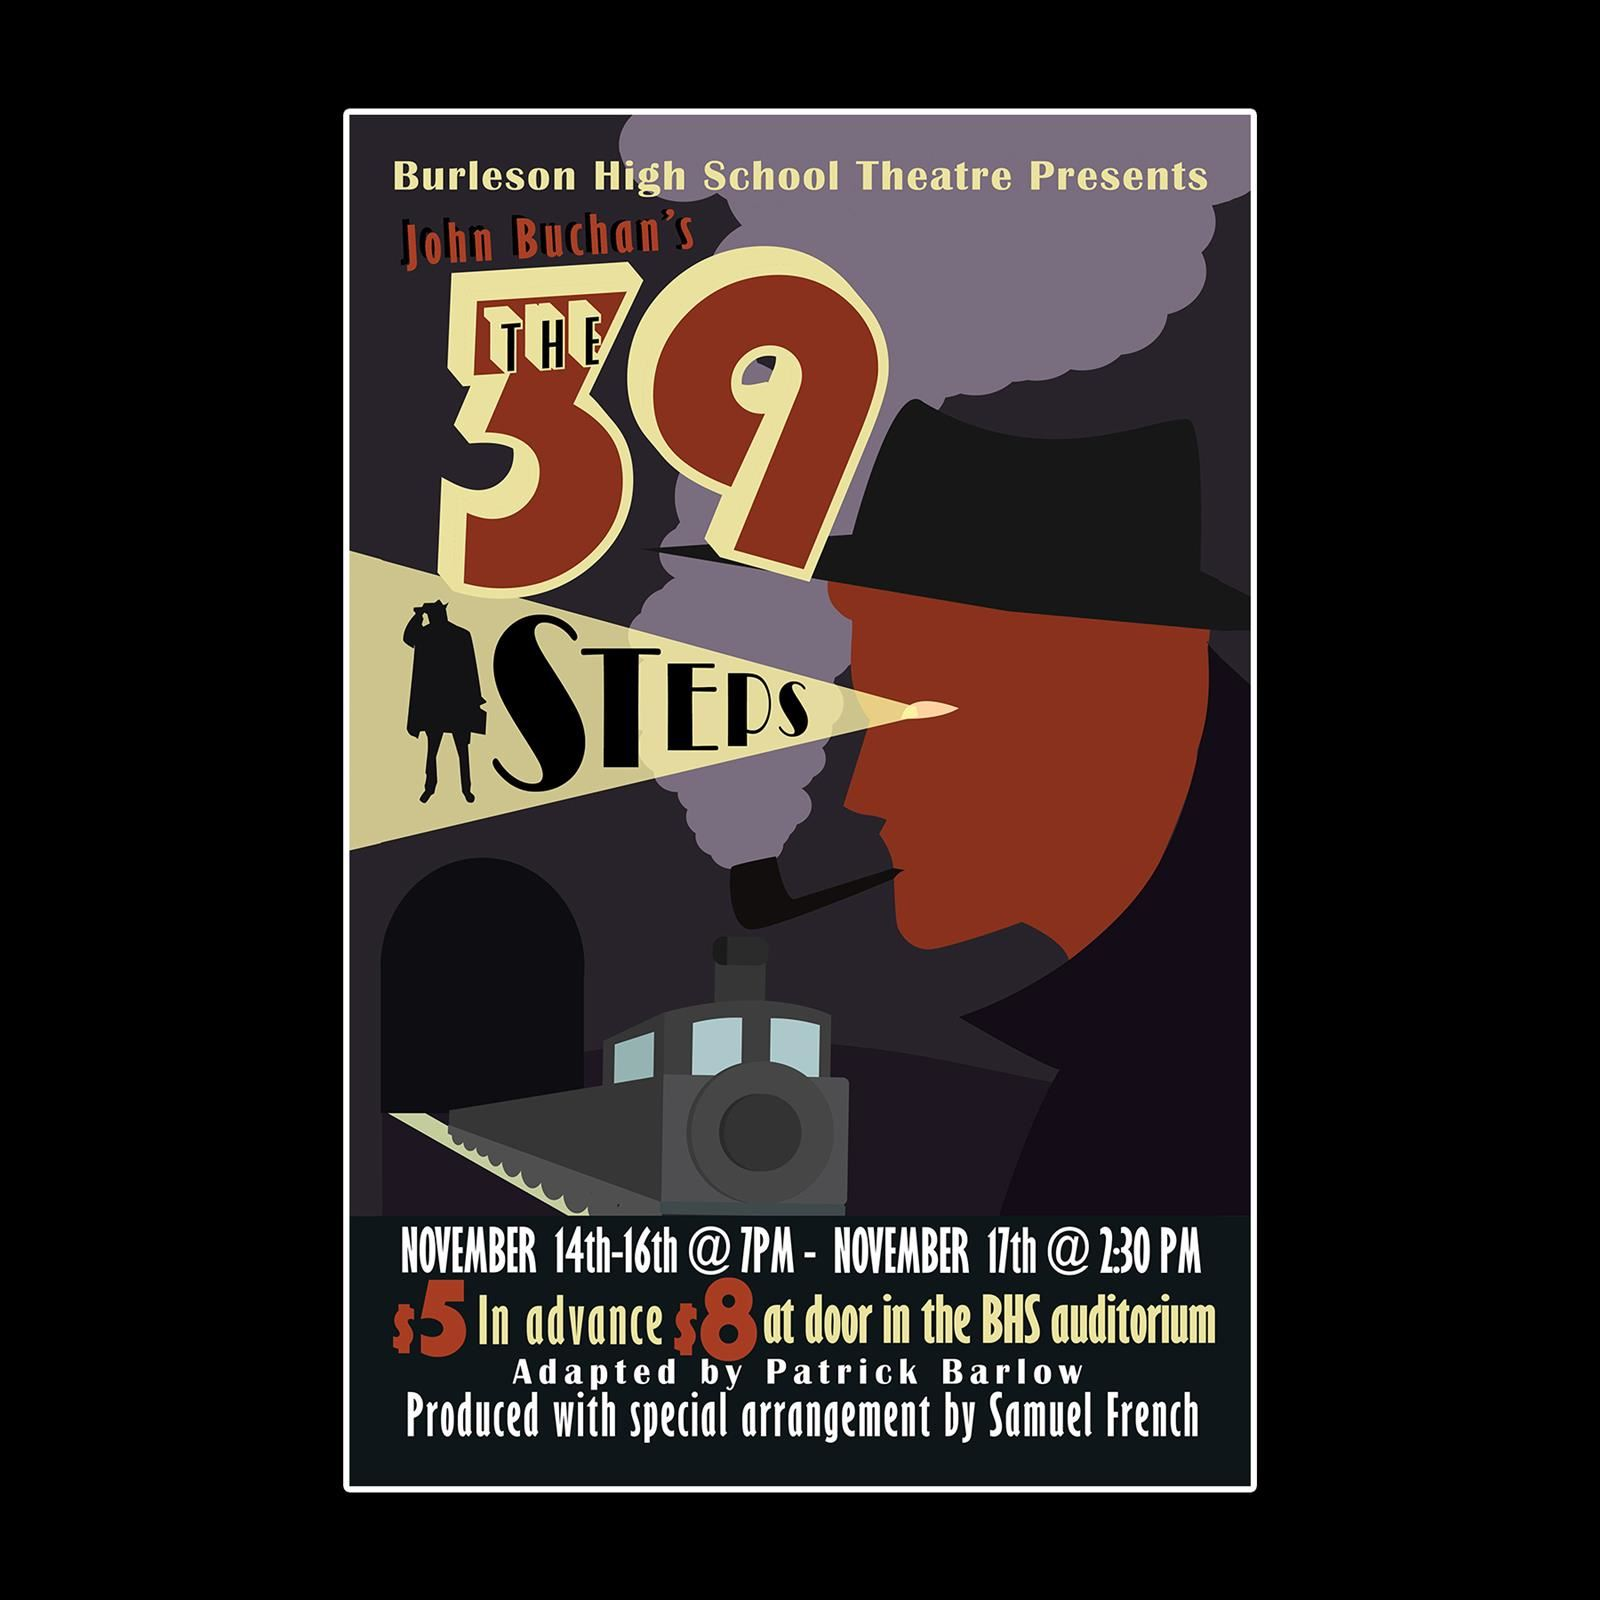 The 39 Steps Promotional Poster